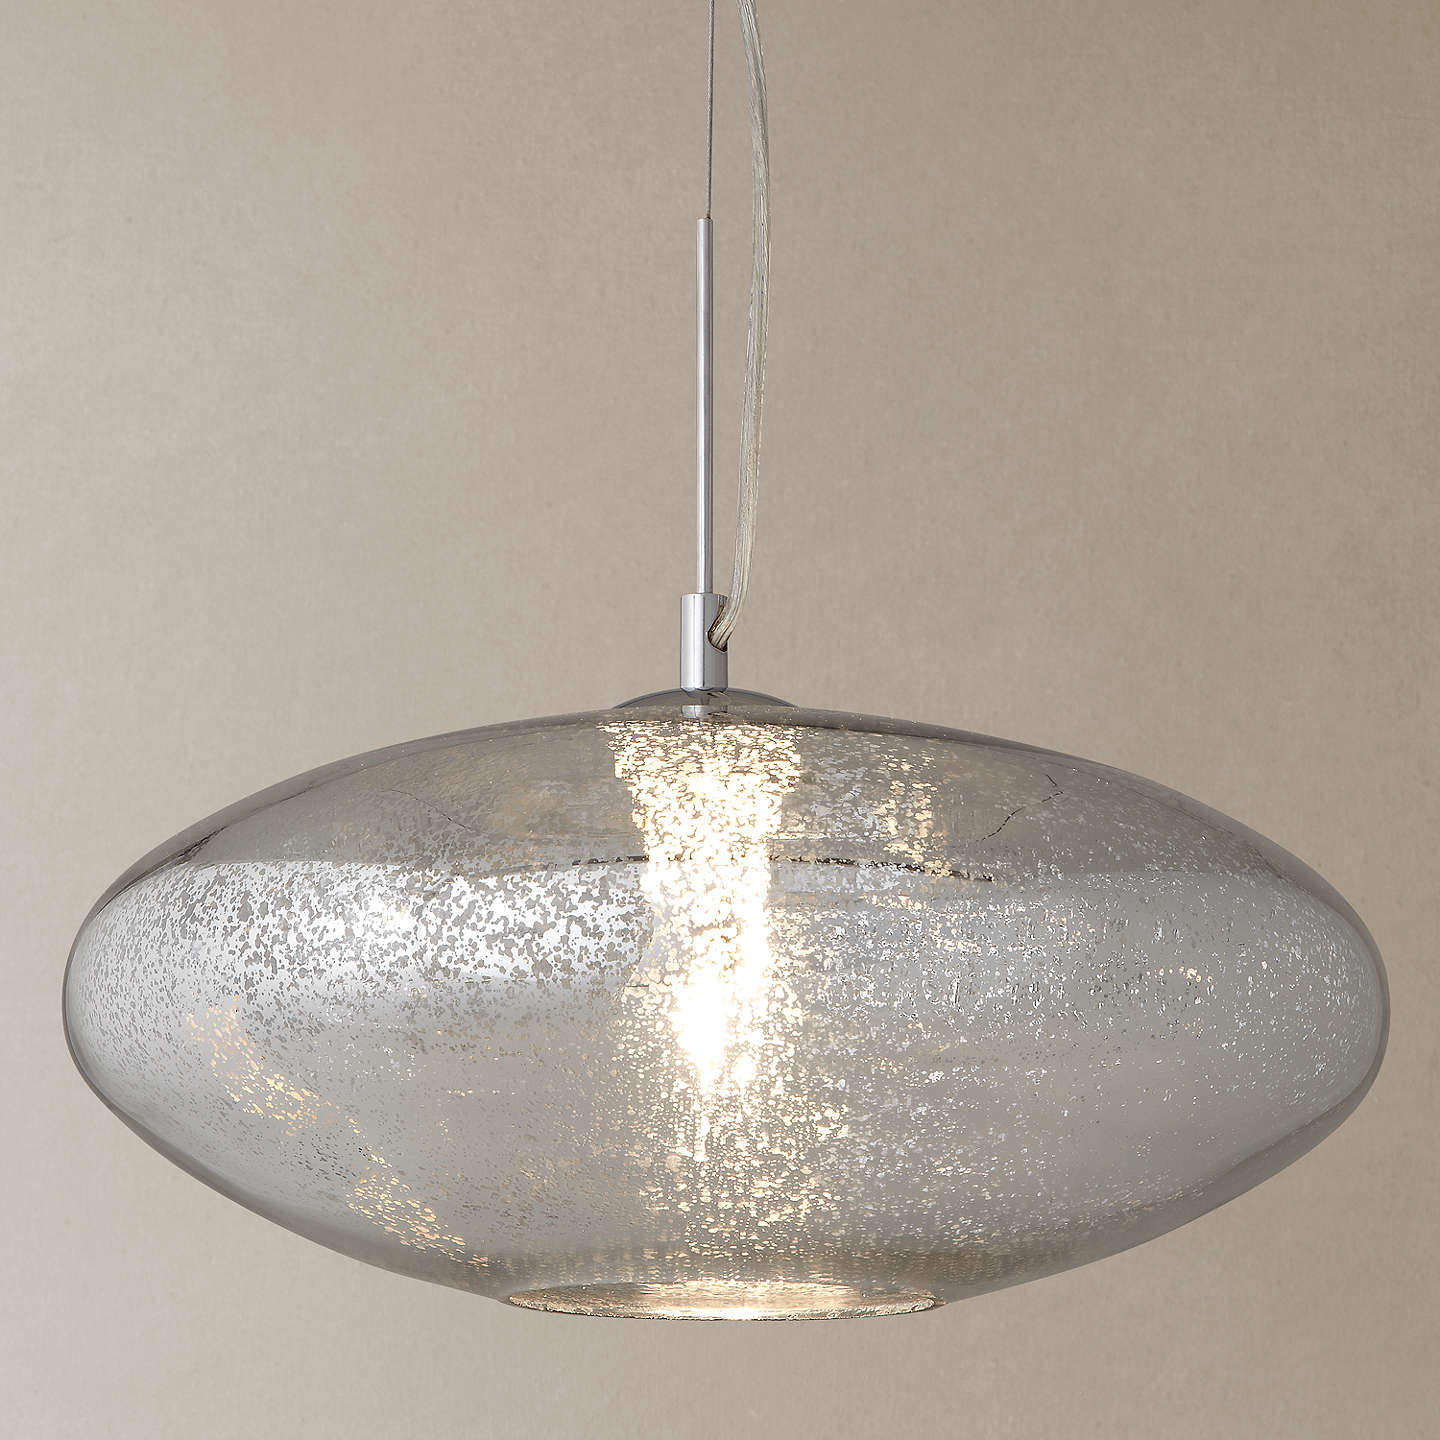 mercury light pendant nickel dp amazon everly com kichler glass brushed